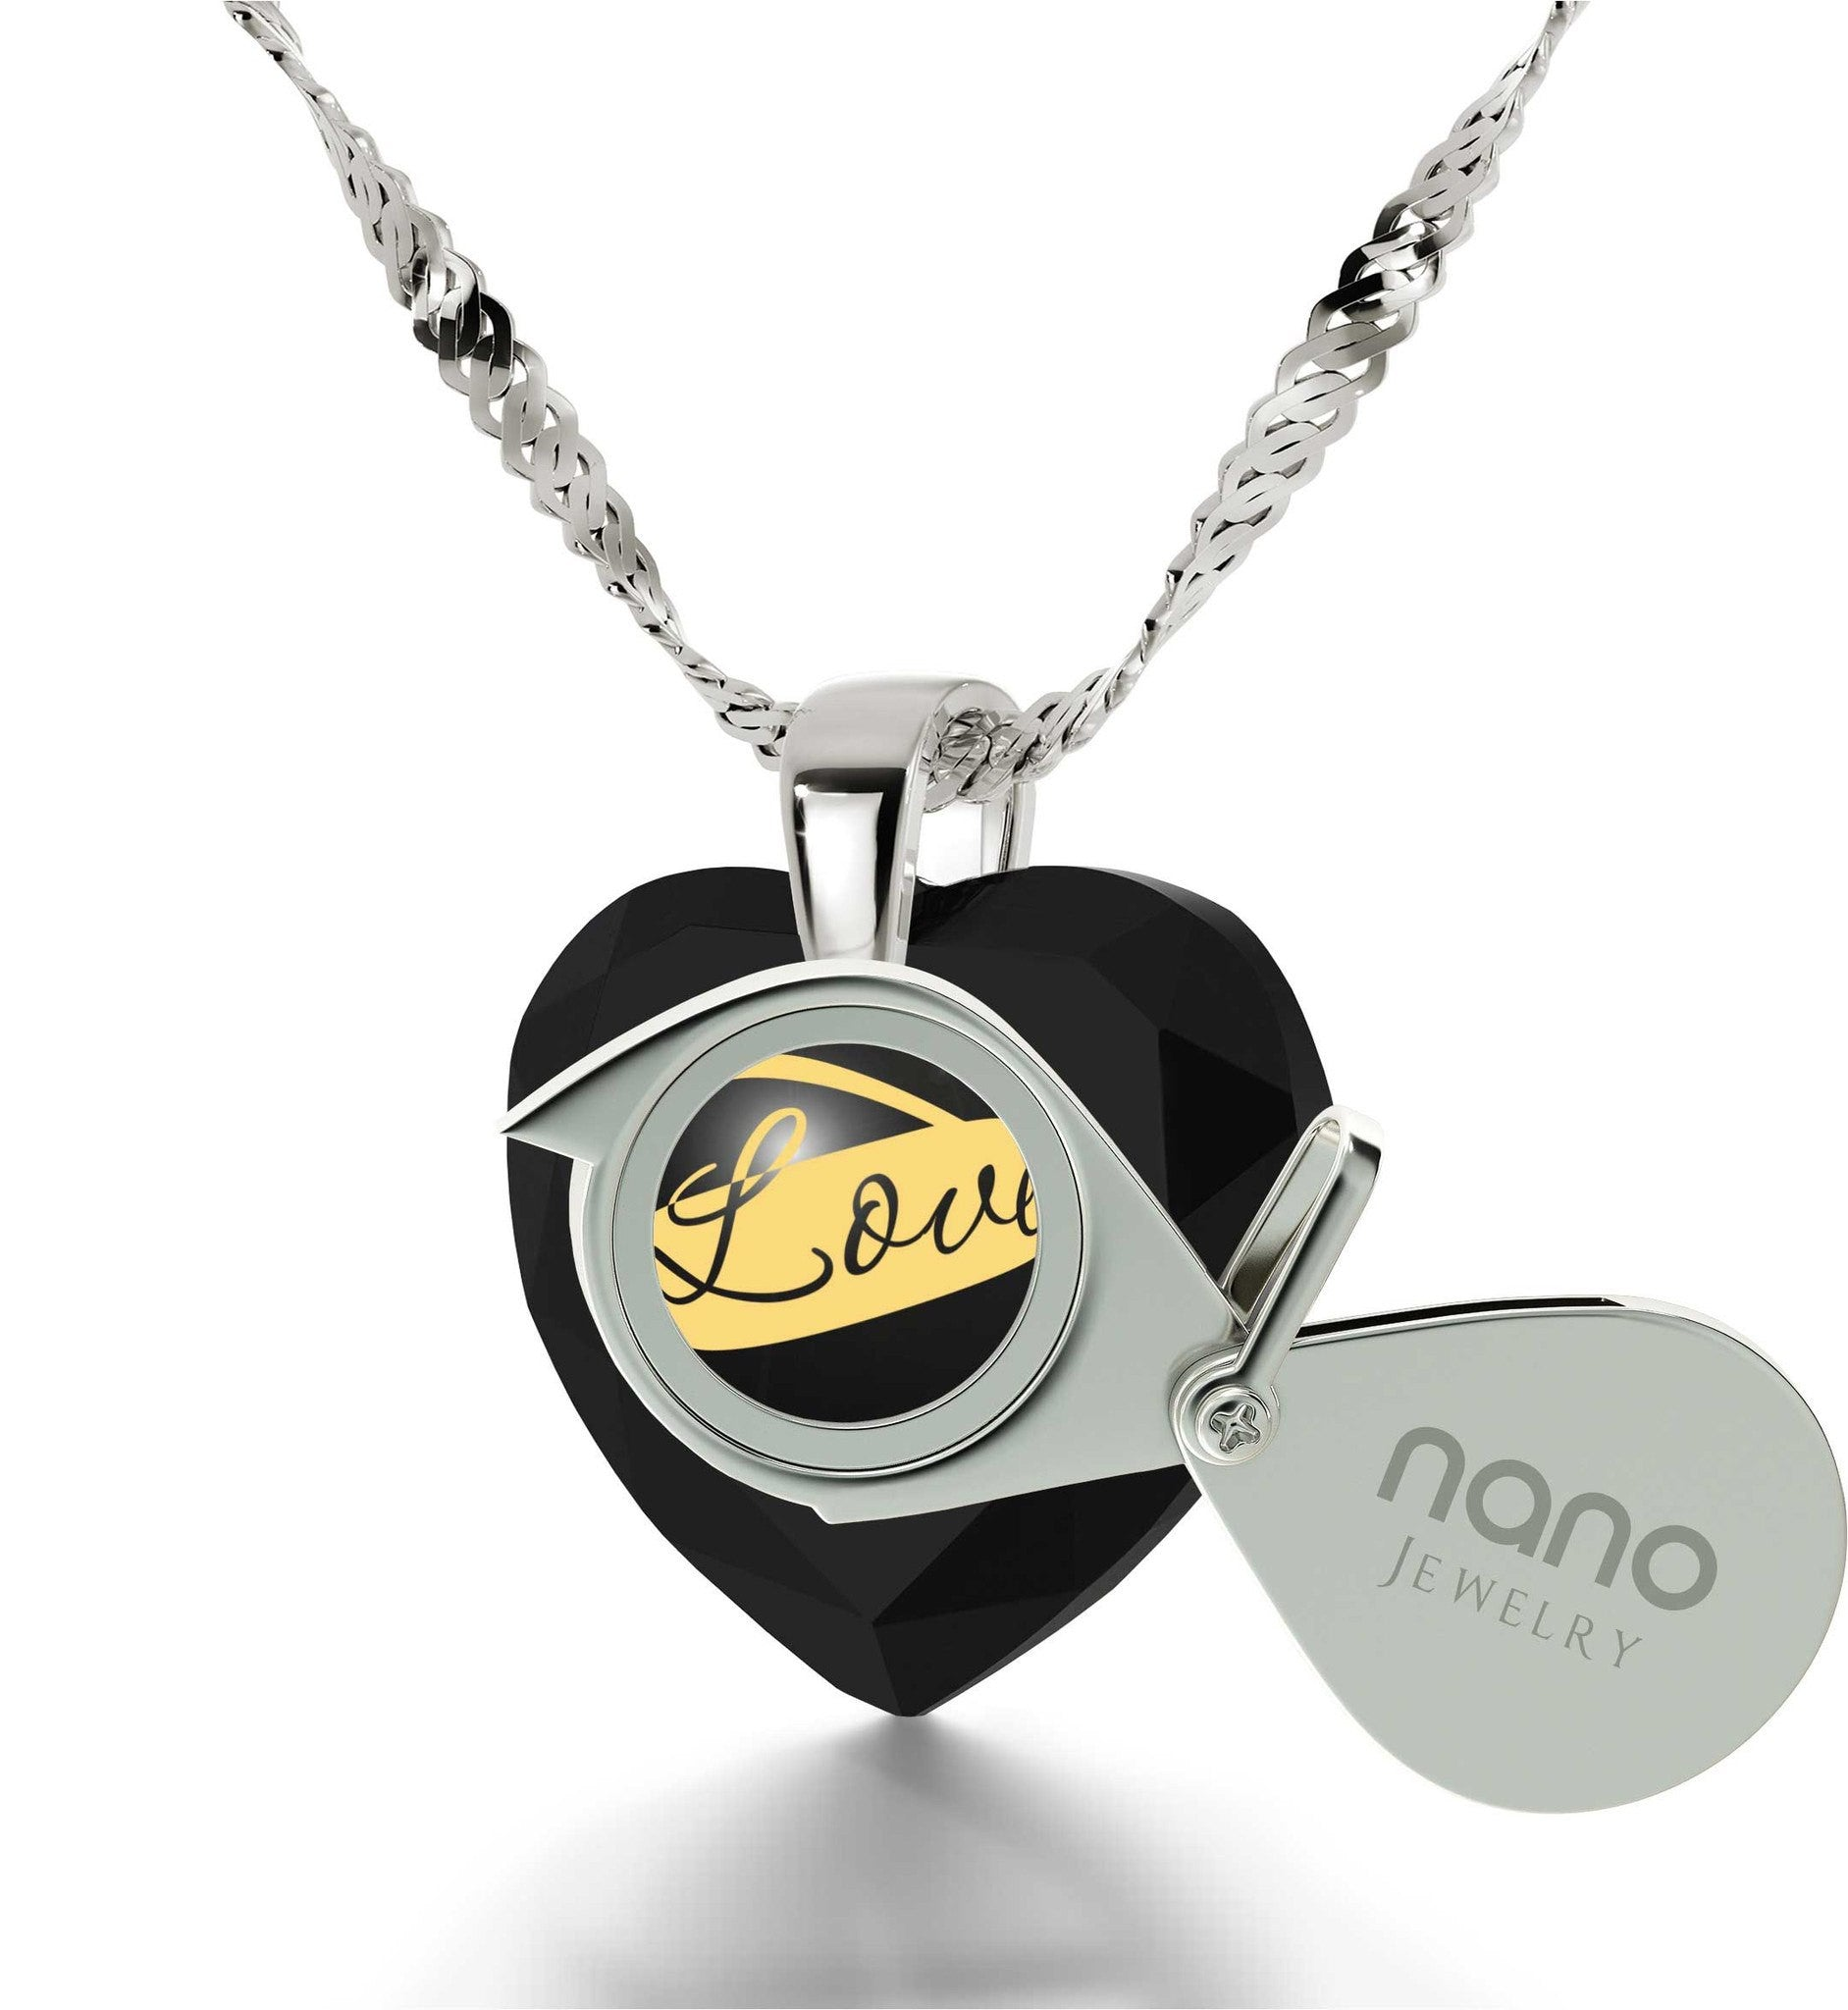 "Best Valentine Gift for Wife, ""I Love You Infinity"" Imprint, 14k White Gold Necklace, Pure Romance Products, by Nano Jewelry"